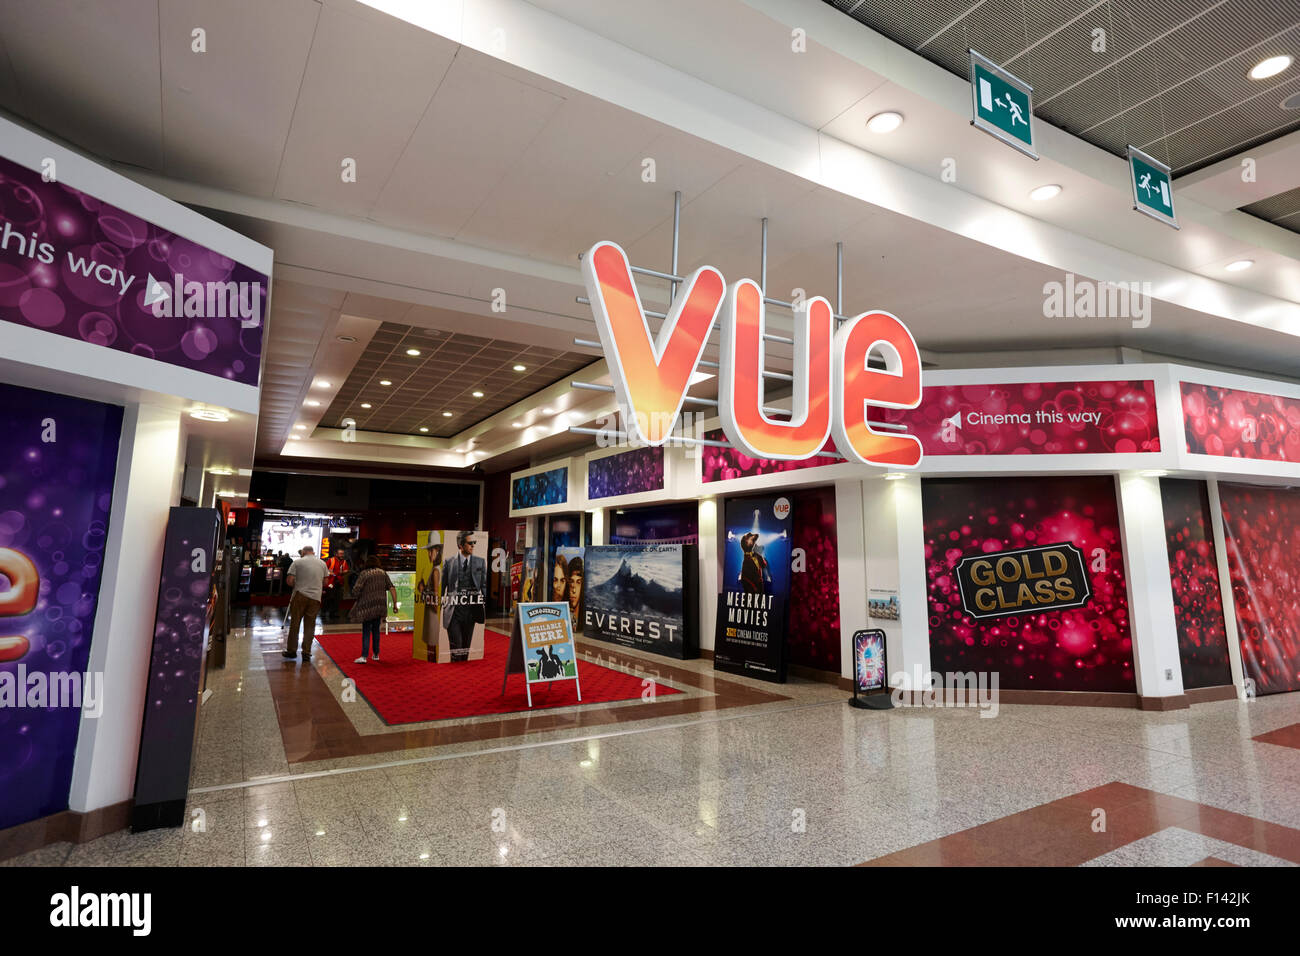 vue cinema lowry shopping mall Manchester ukStock Photo